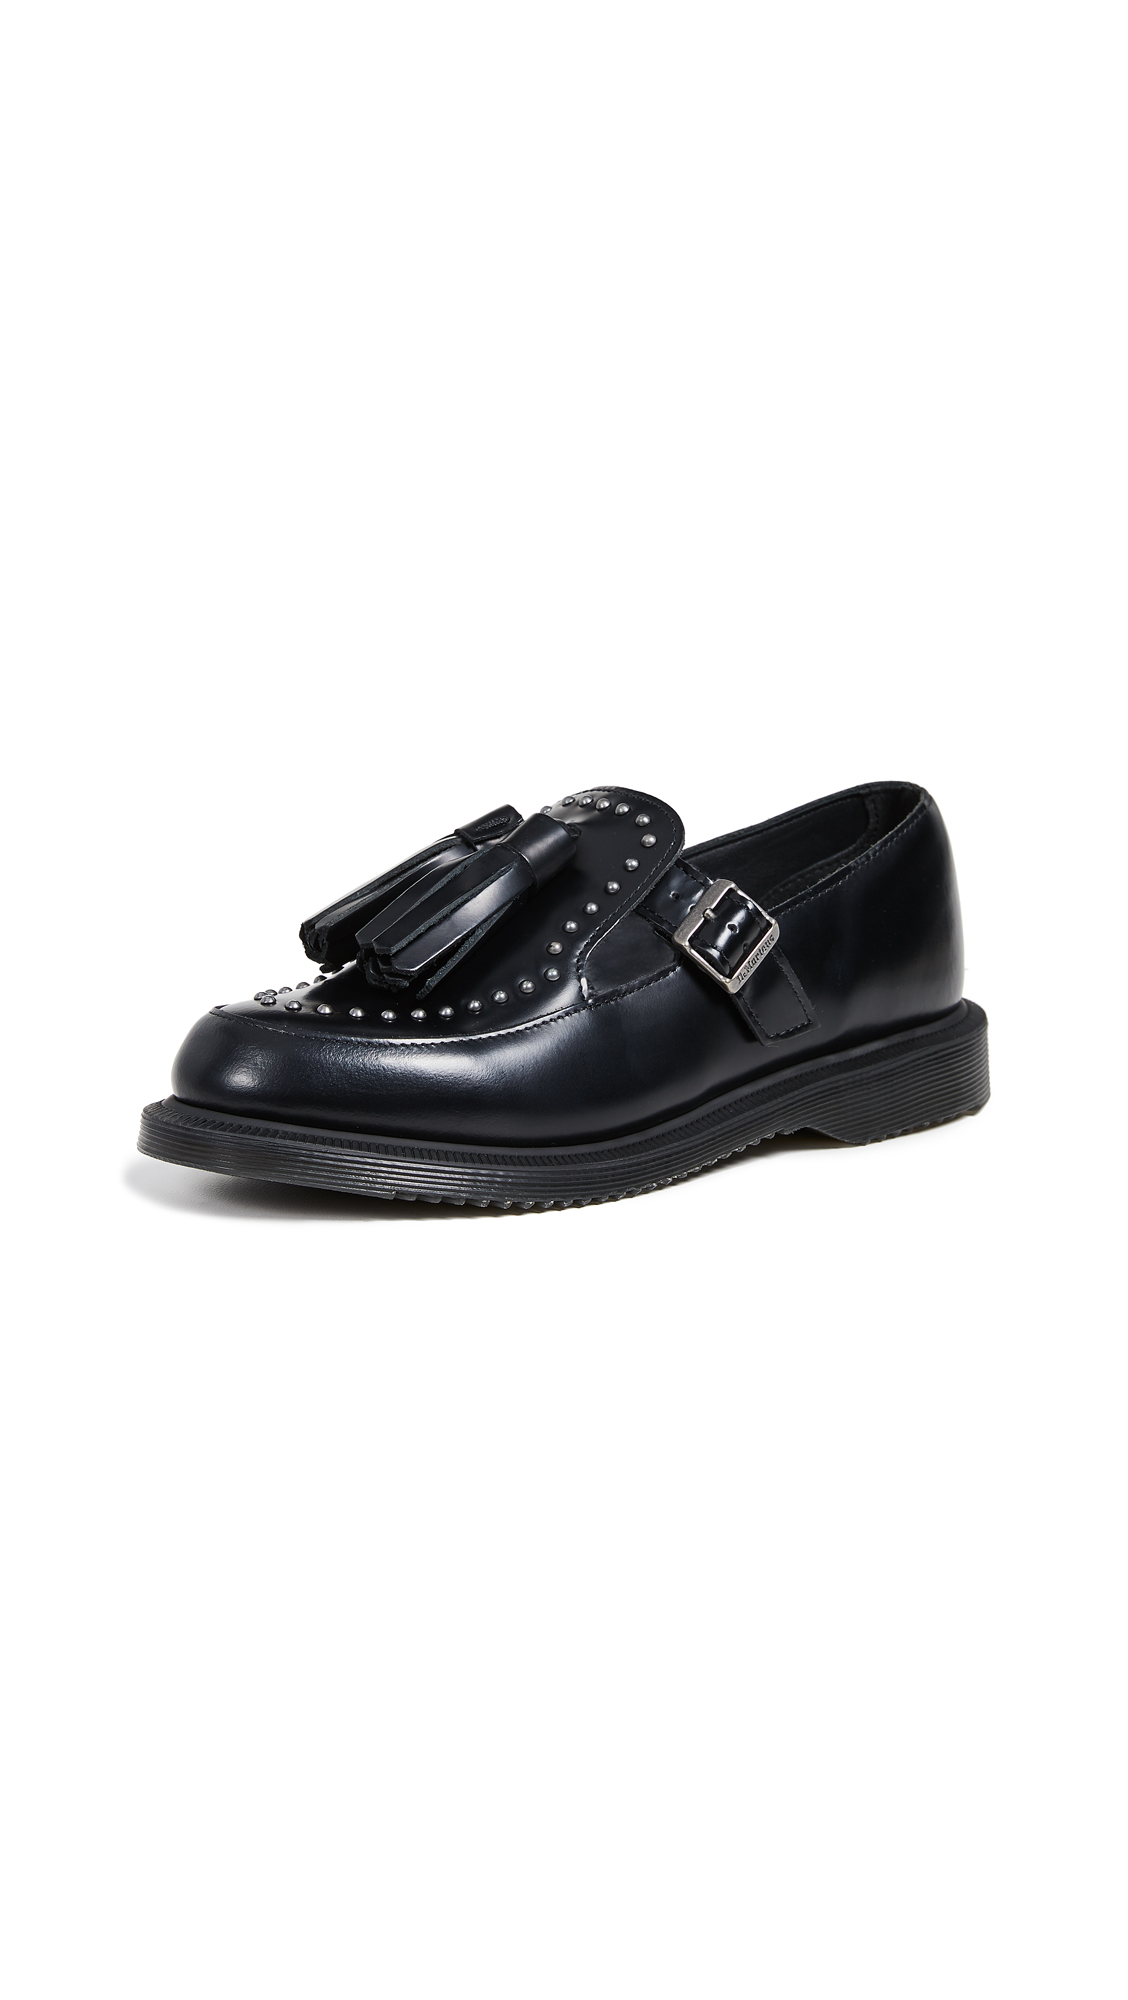 Dr. Martens Gracia Stud Mary Jane Shoes - Black